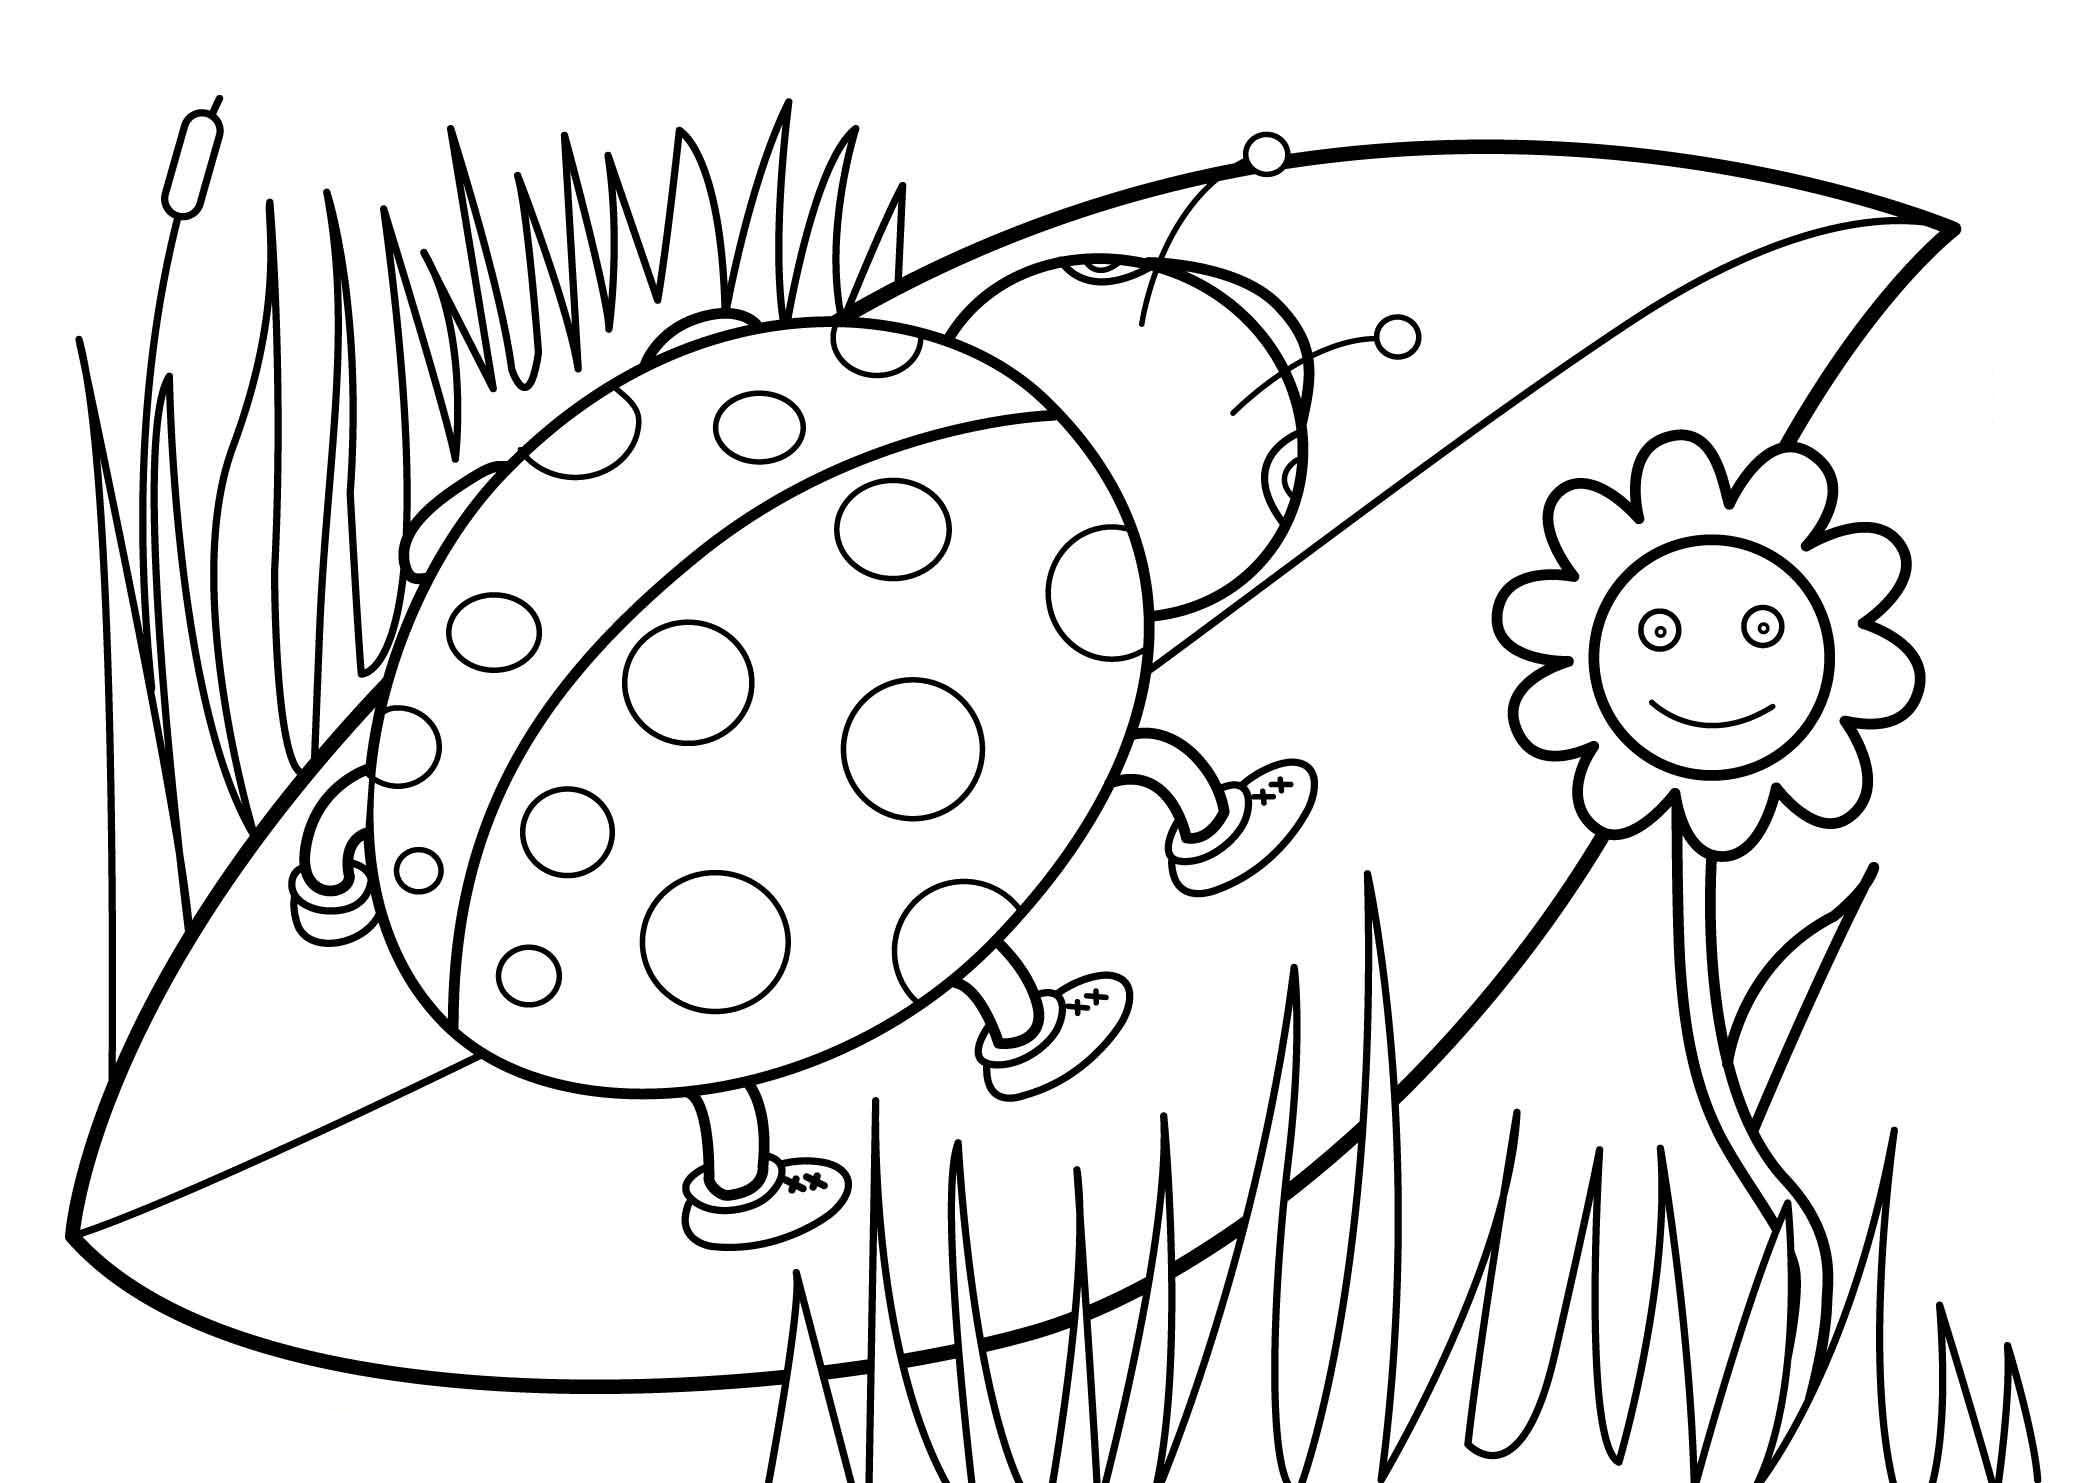 coloring printouts for kids disney coloring pages best coloring pages for kids coloring printouts kids for